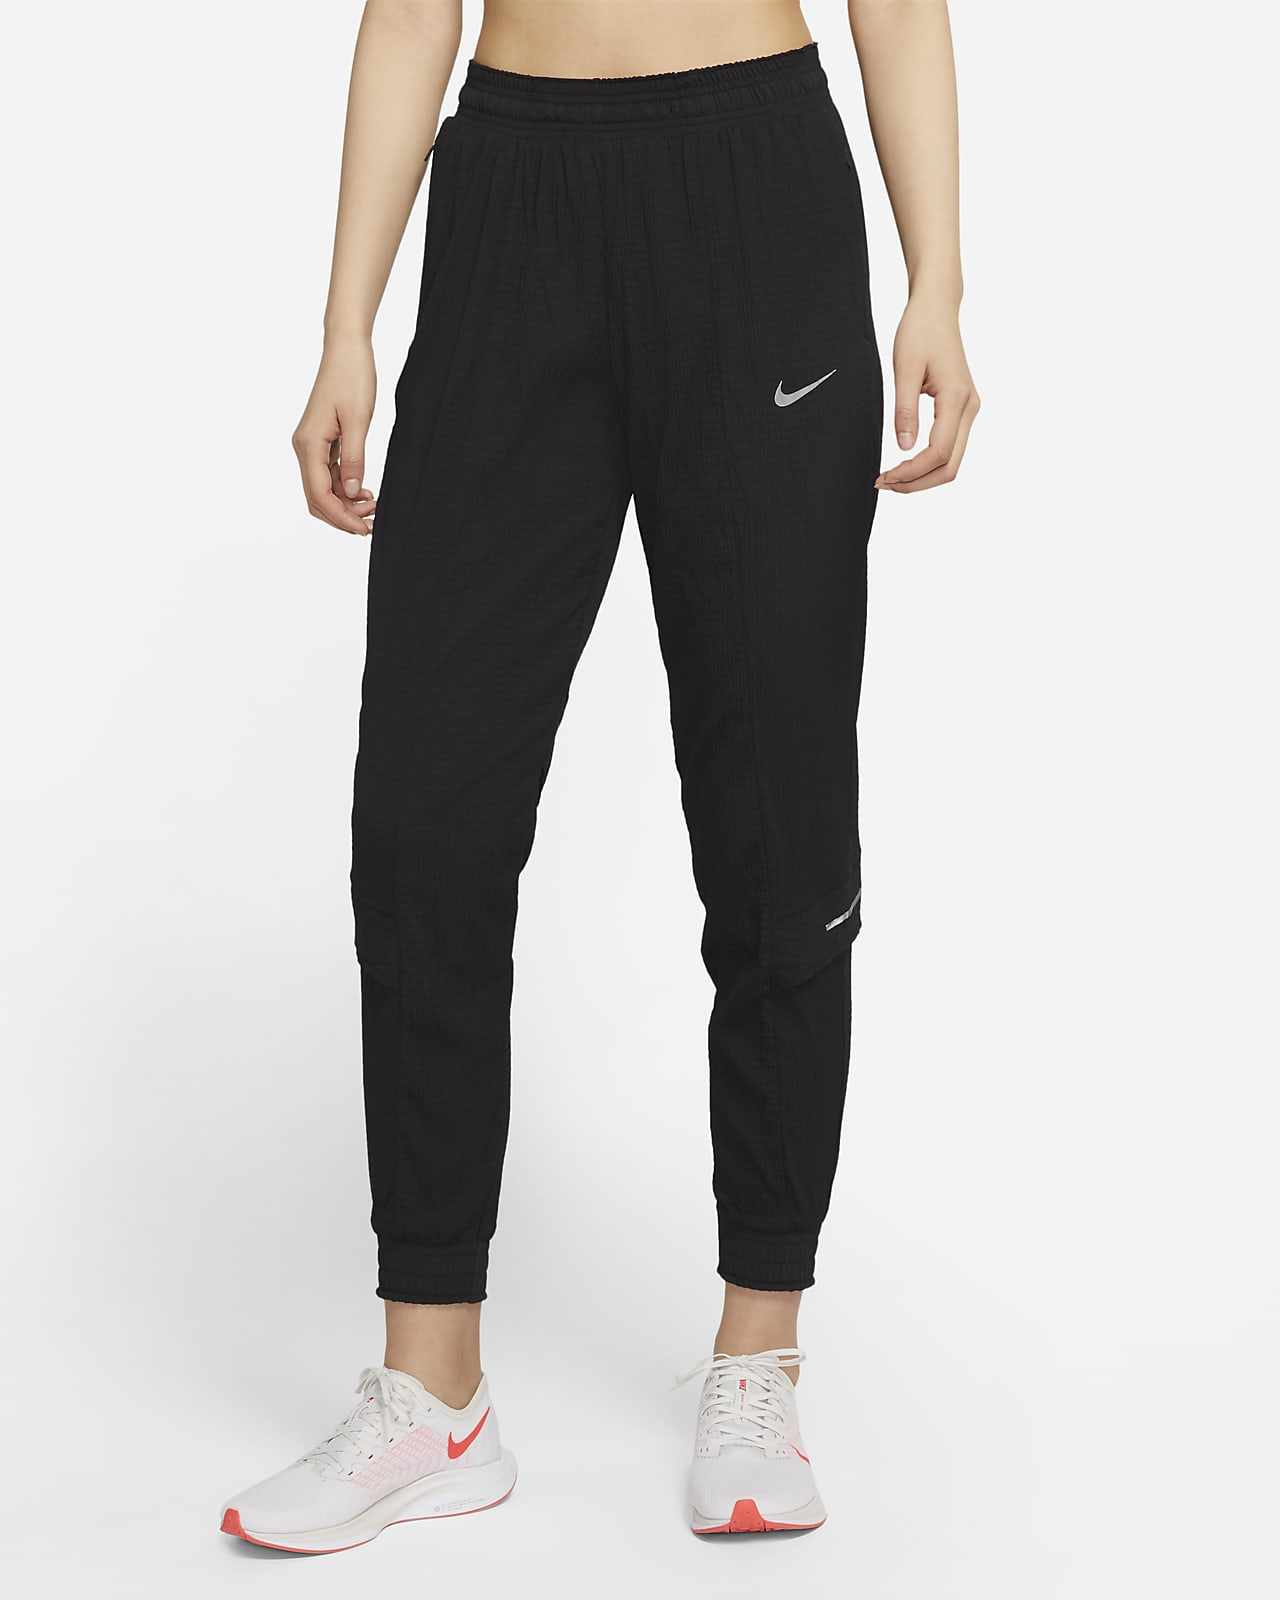 Nike Run Division Swift Women's Packable Running Trousers